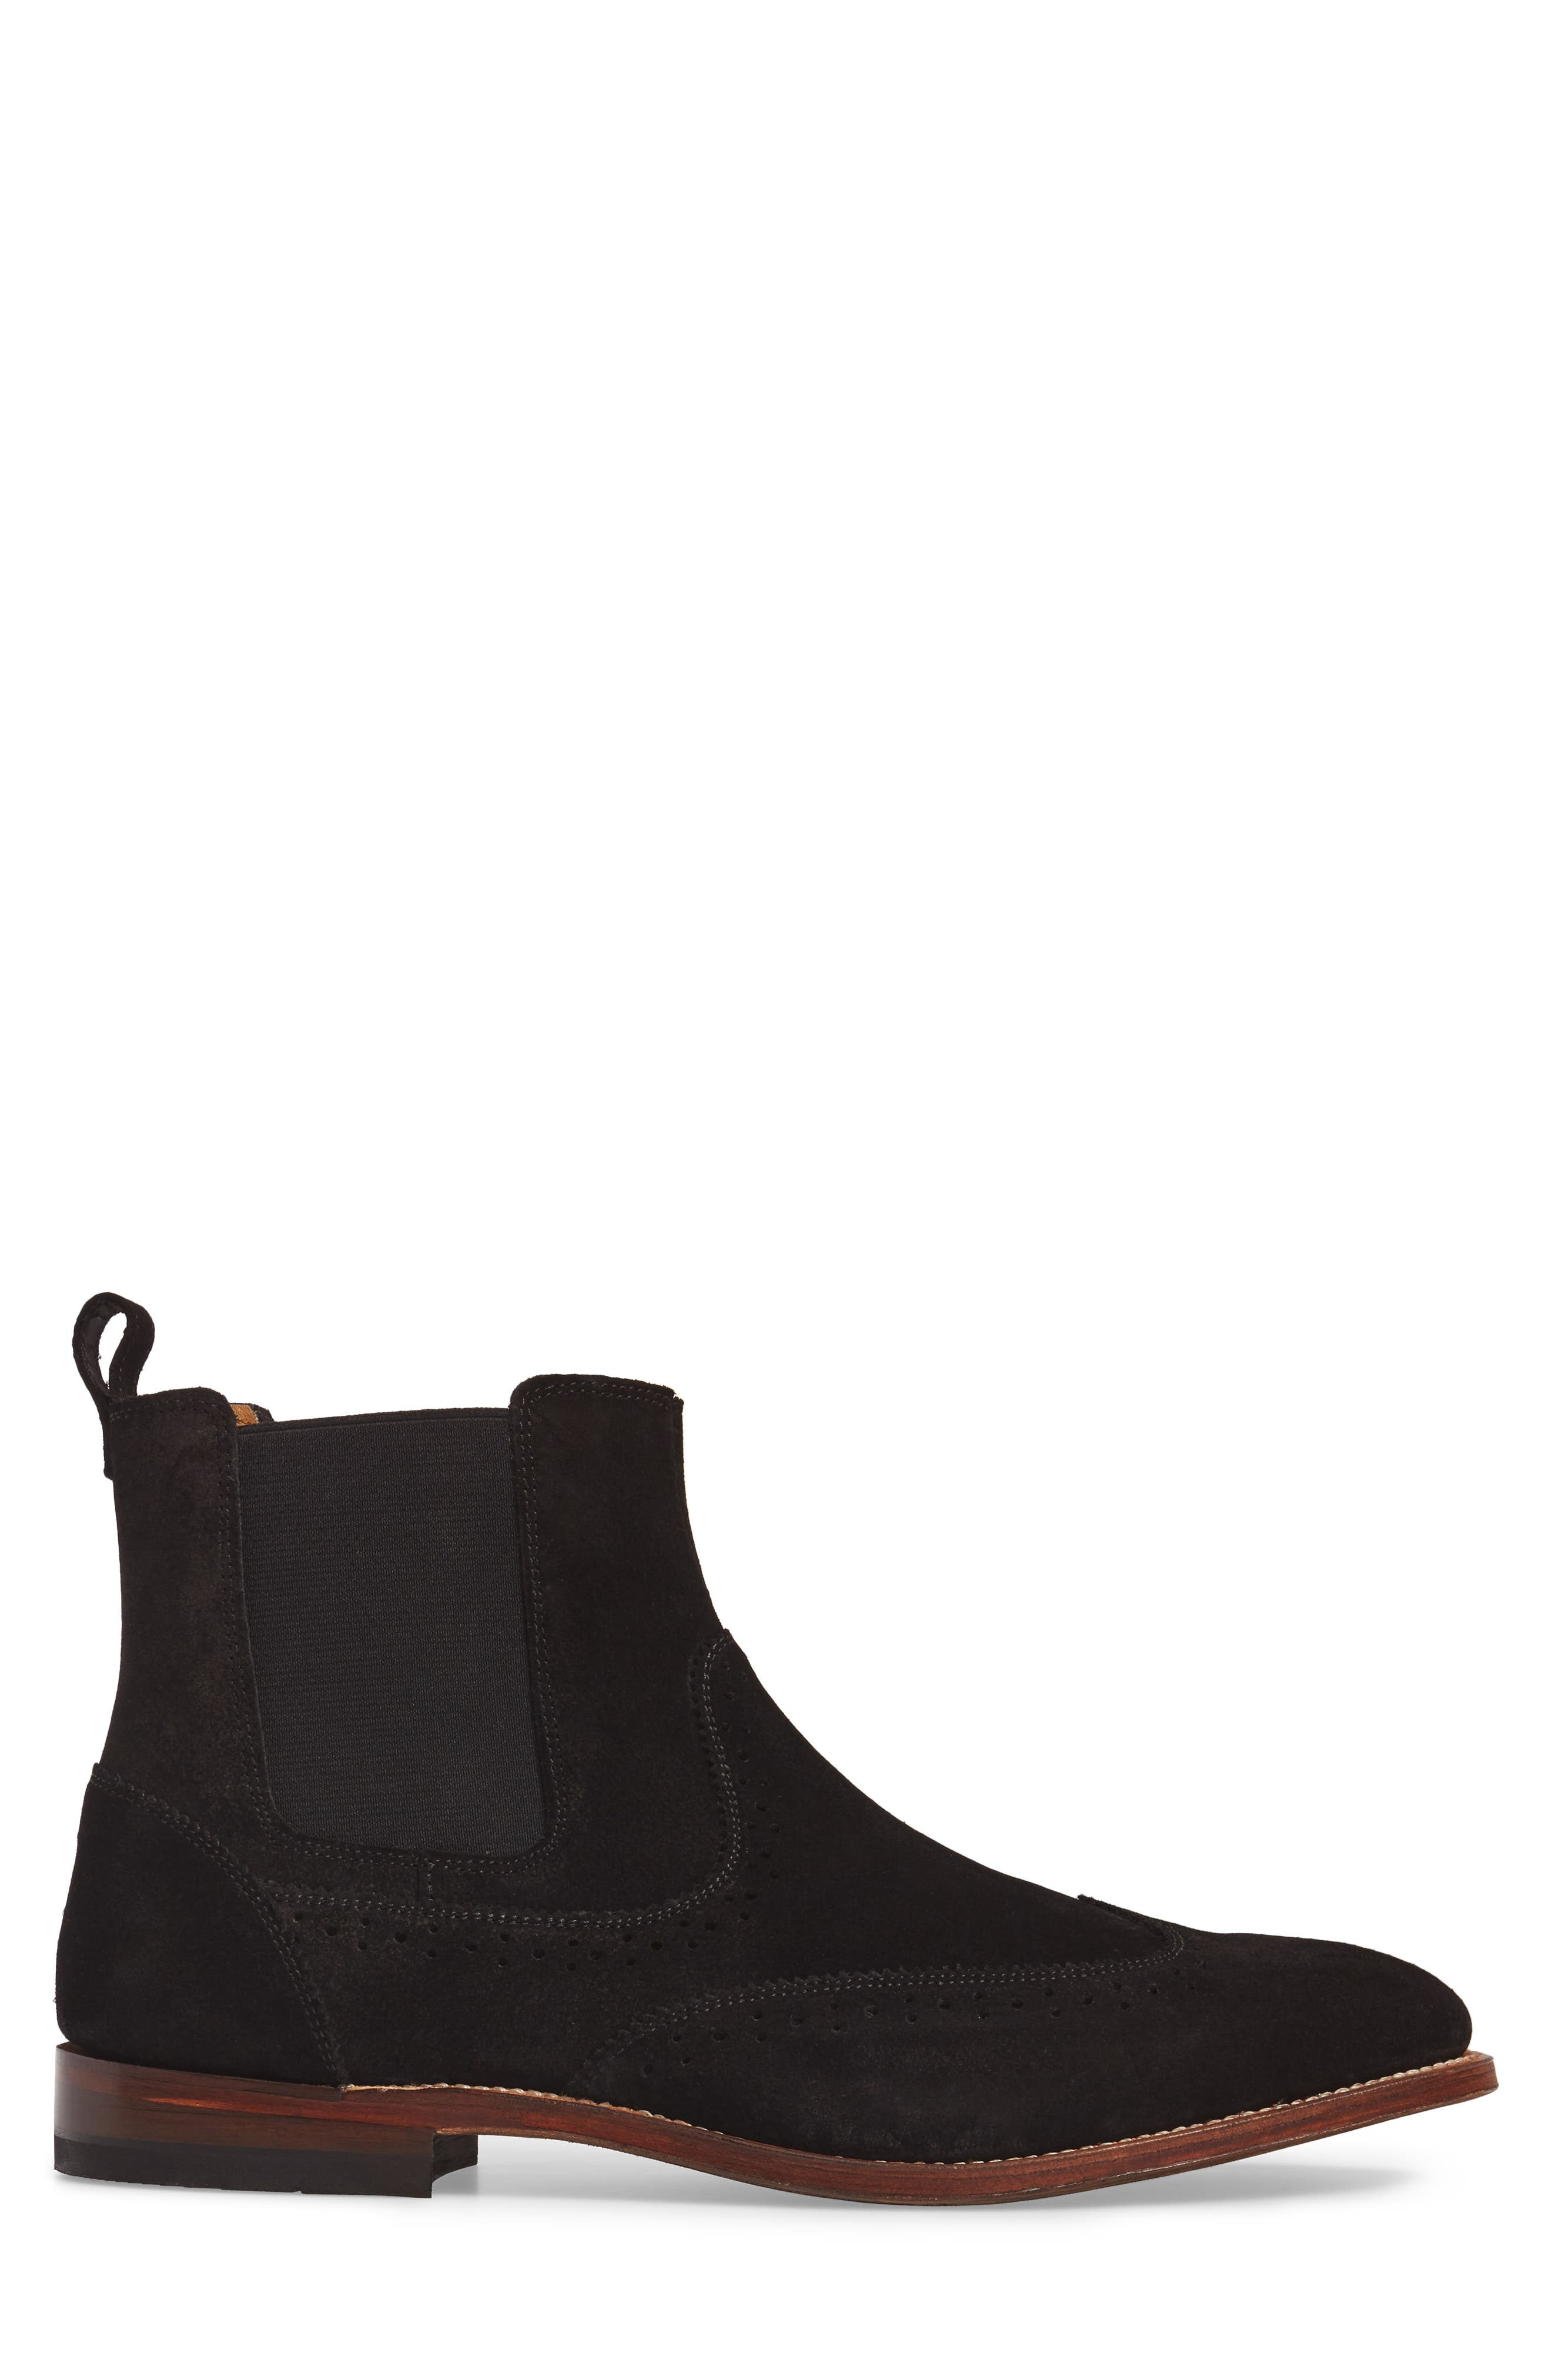 Madison II Wingtip Chelsea Boot,                             Alternate thumbnail 3, color,                             BLACK SUEDE